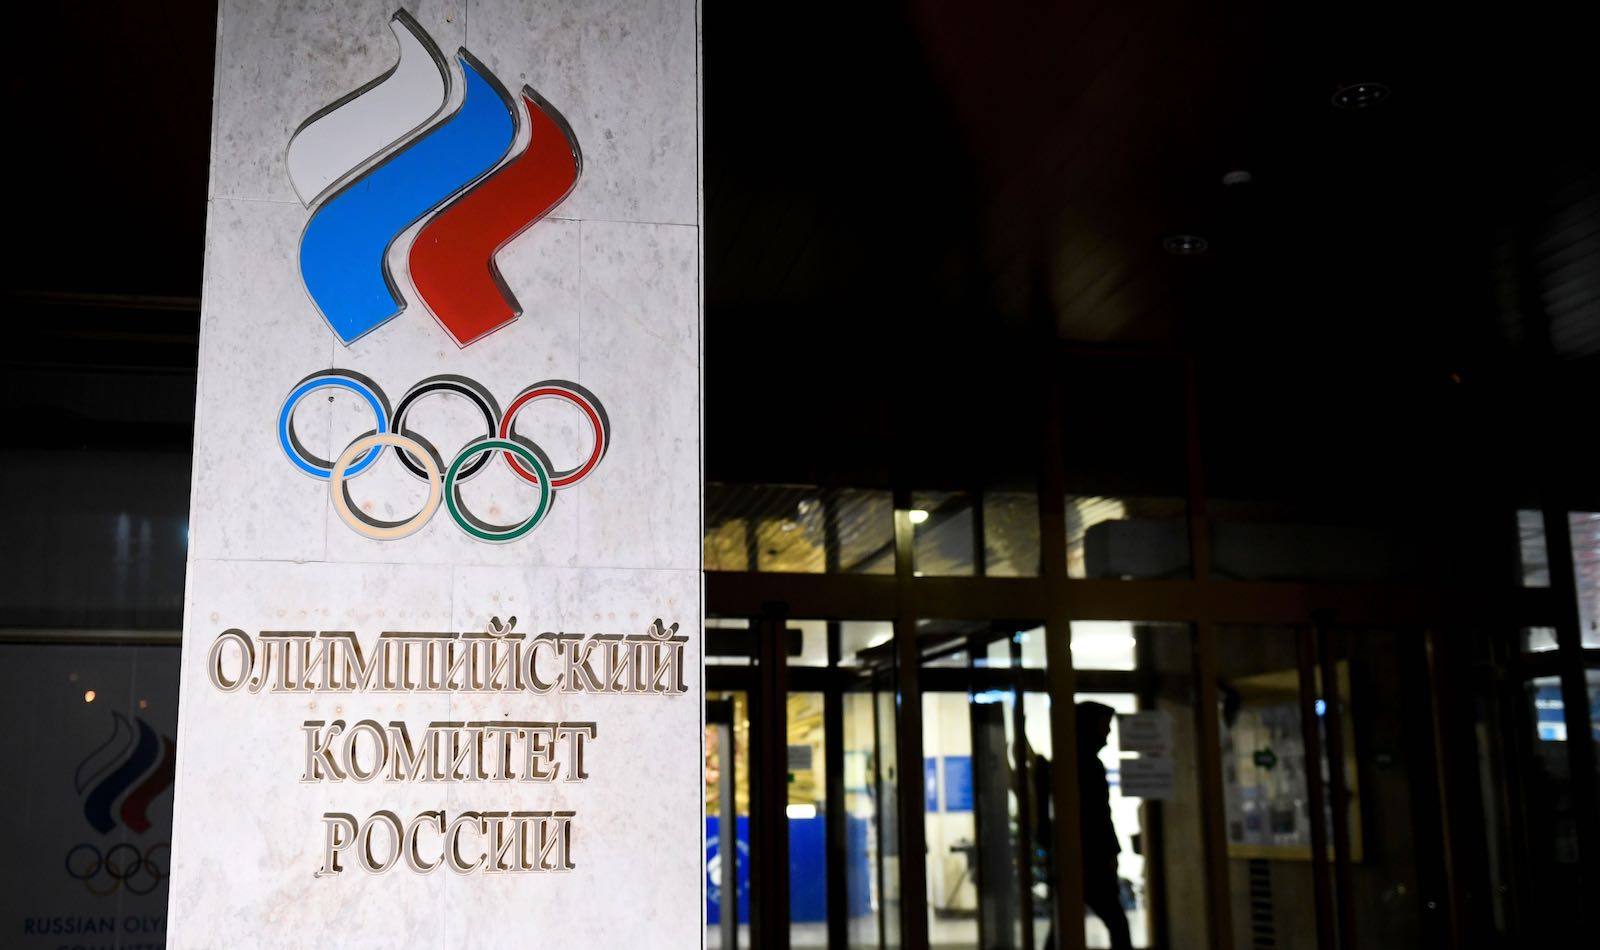 Russian Olympic Committee headquarters in Moscow – Russia is now banned from global sporting events for four years (Photo: Alexander Nemenov/AFP/Getty Images)